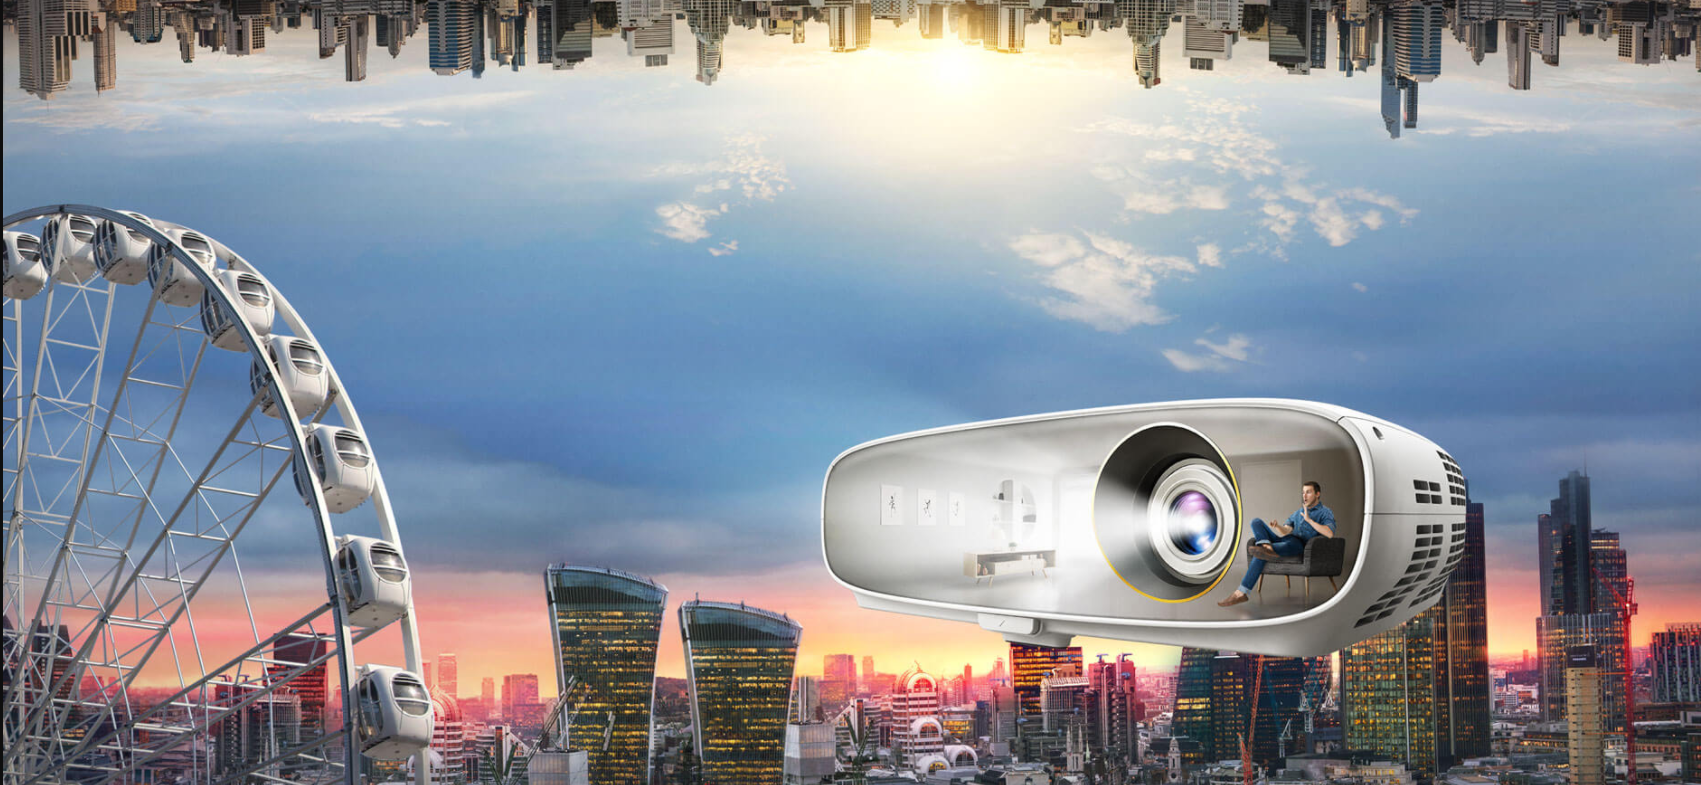 benq-ht2550-home-theater-projector